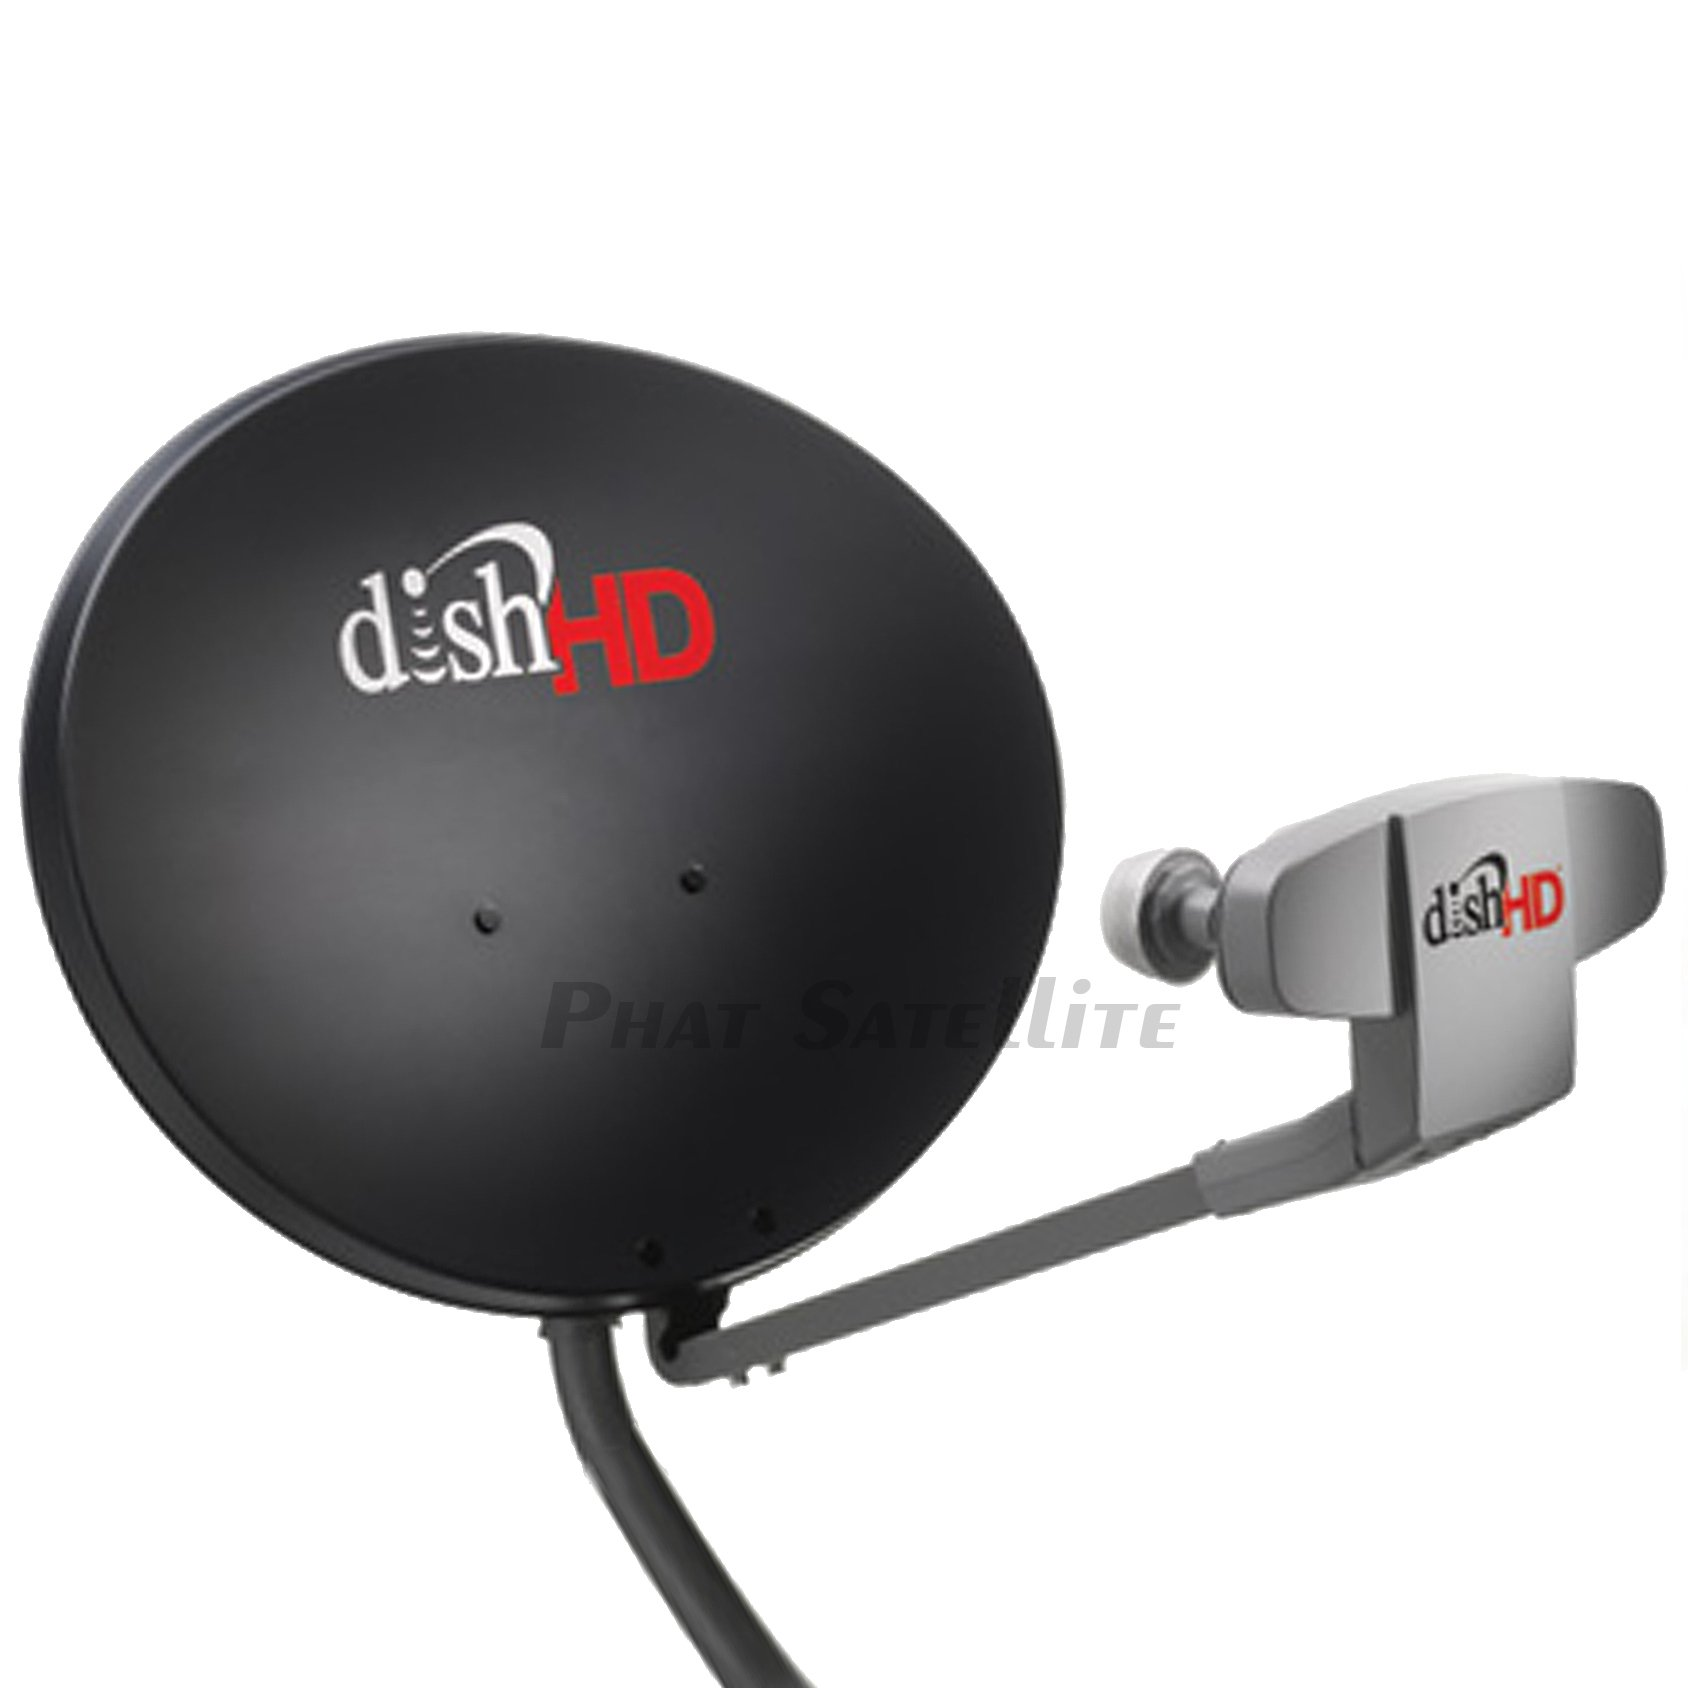 Dish Network 1000.2 Dish 110, 119, 129 Satellites High Definition Dish by Dish Network